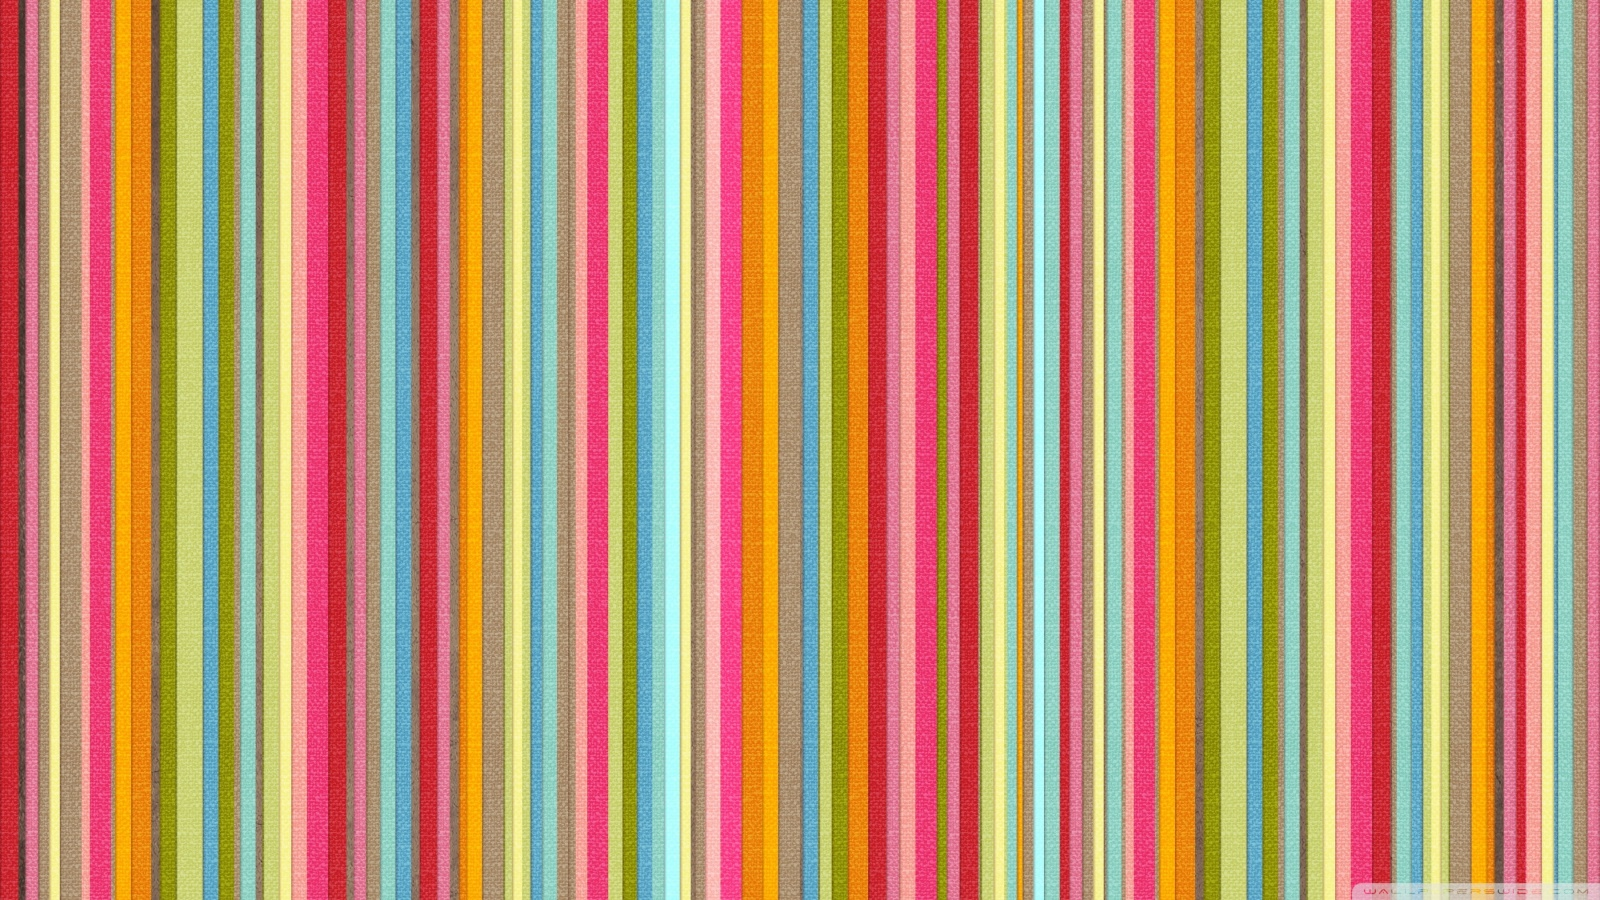 Thin Stripes HD desktop    High Definition   Fullscreen HD Wallpaper